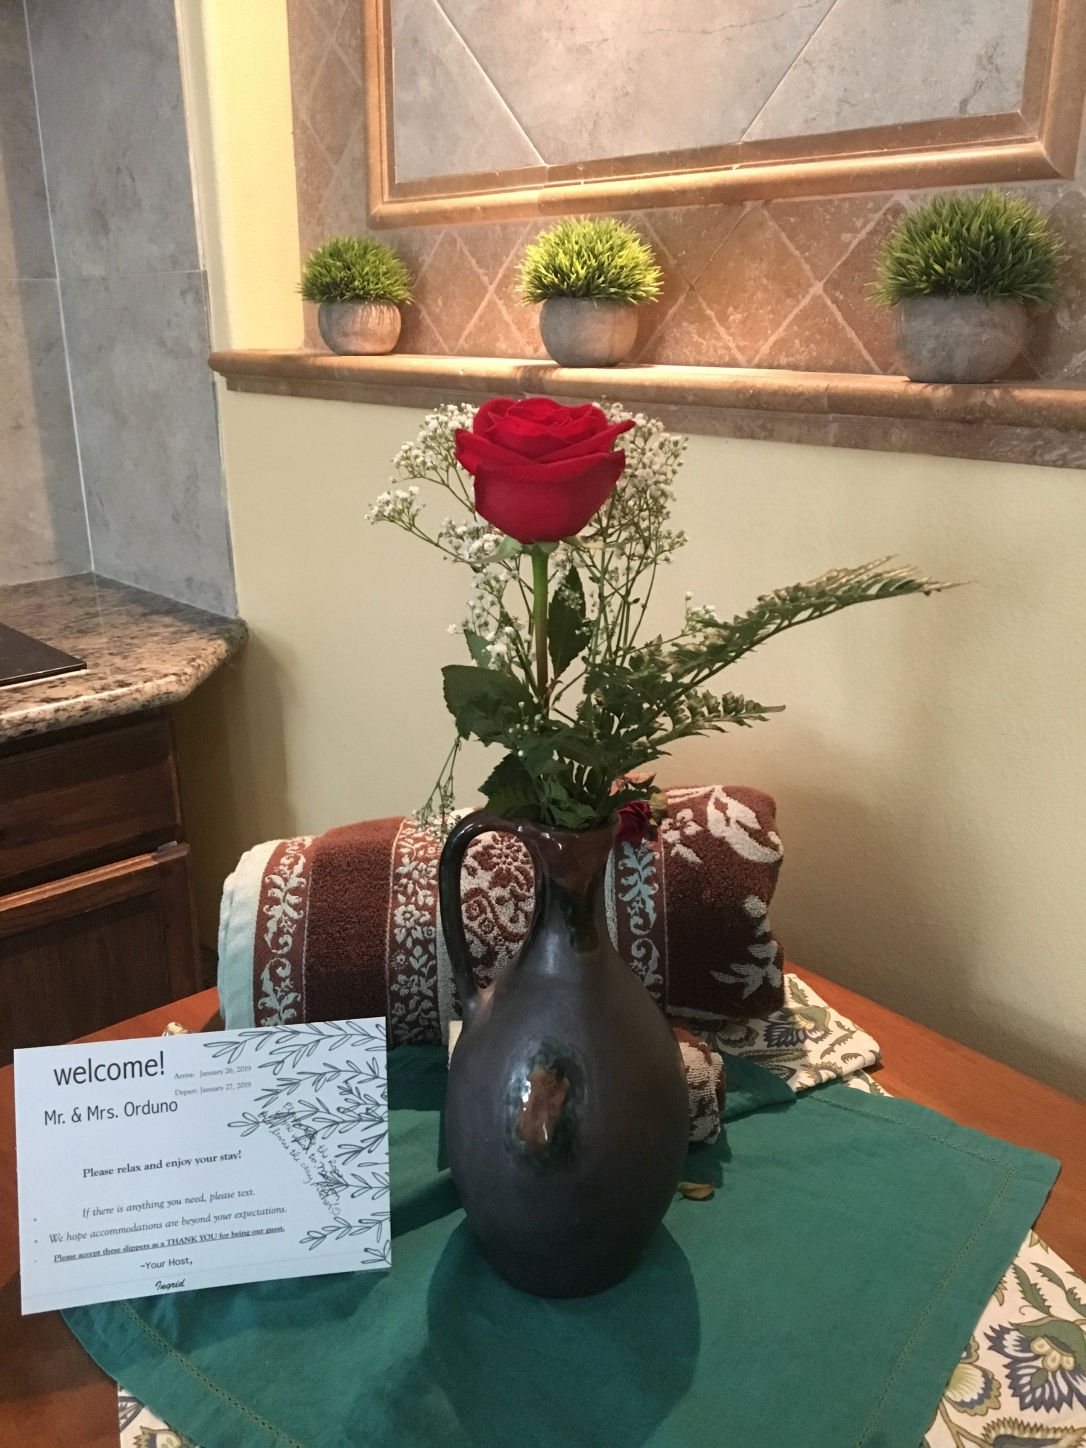 Rose left for us at AirBnb Victorville Ingrids Haus